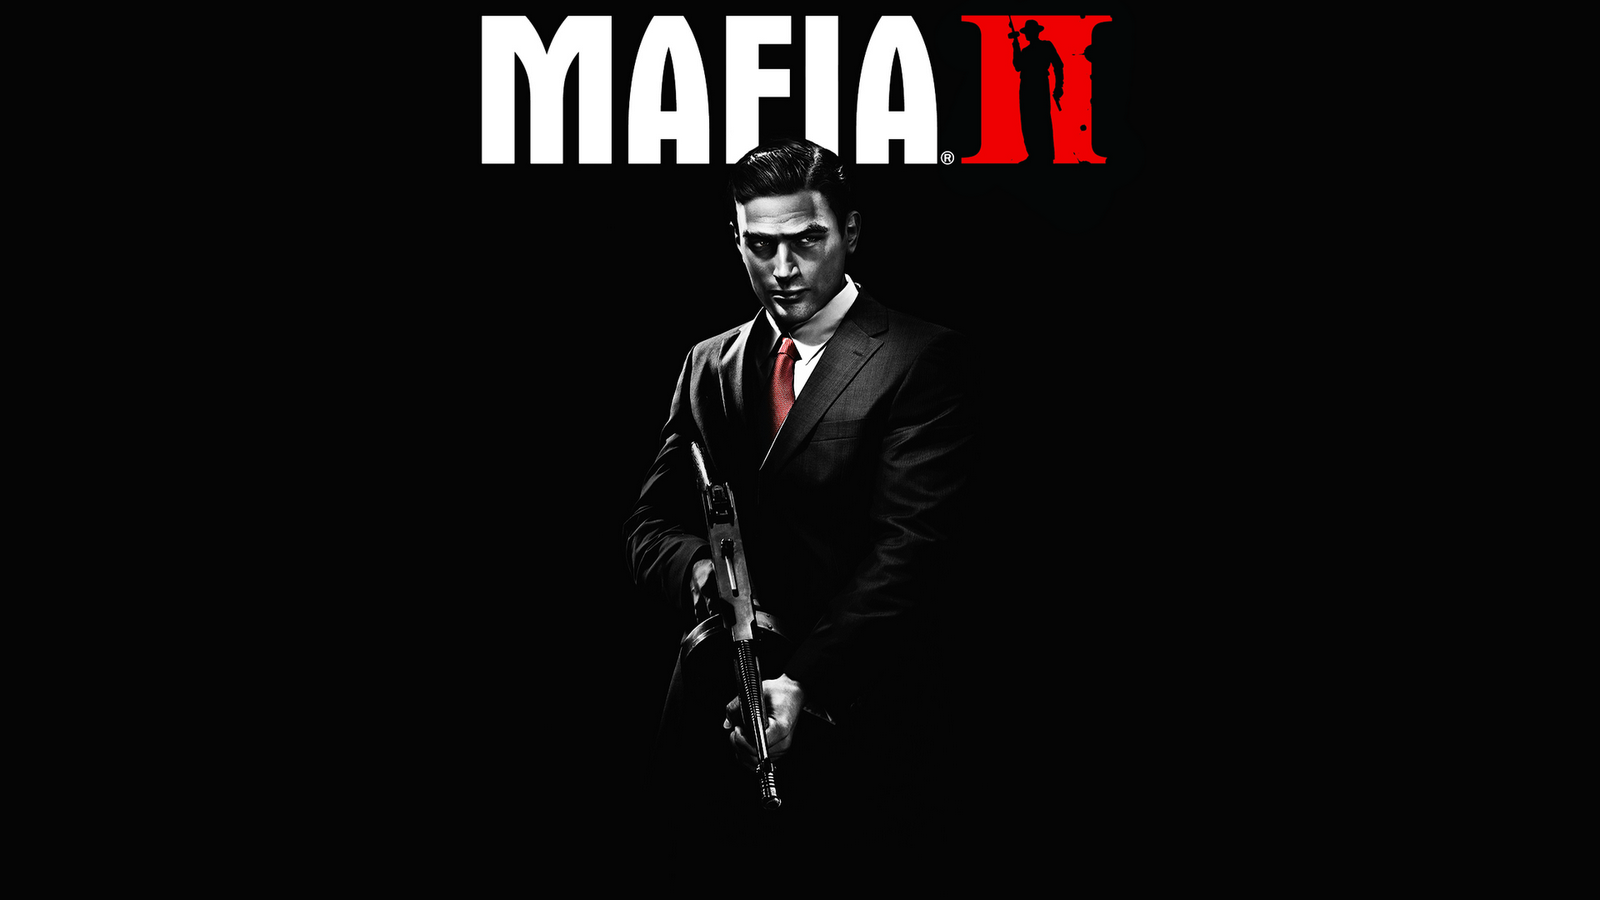 47 Mafia 2 Wallpapers On Wallpapersafari